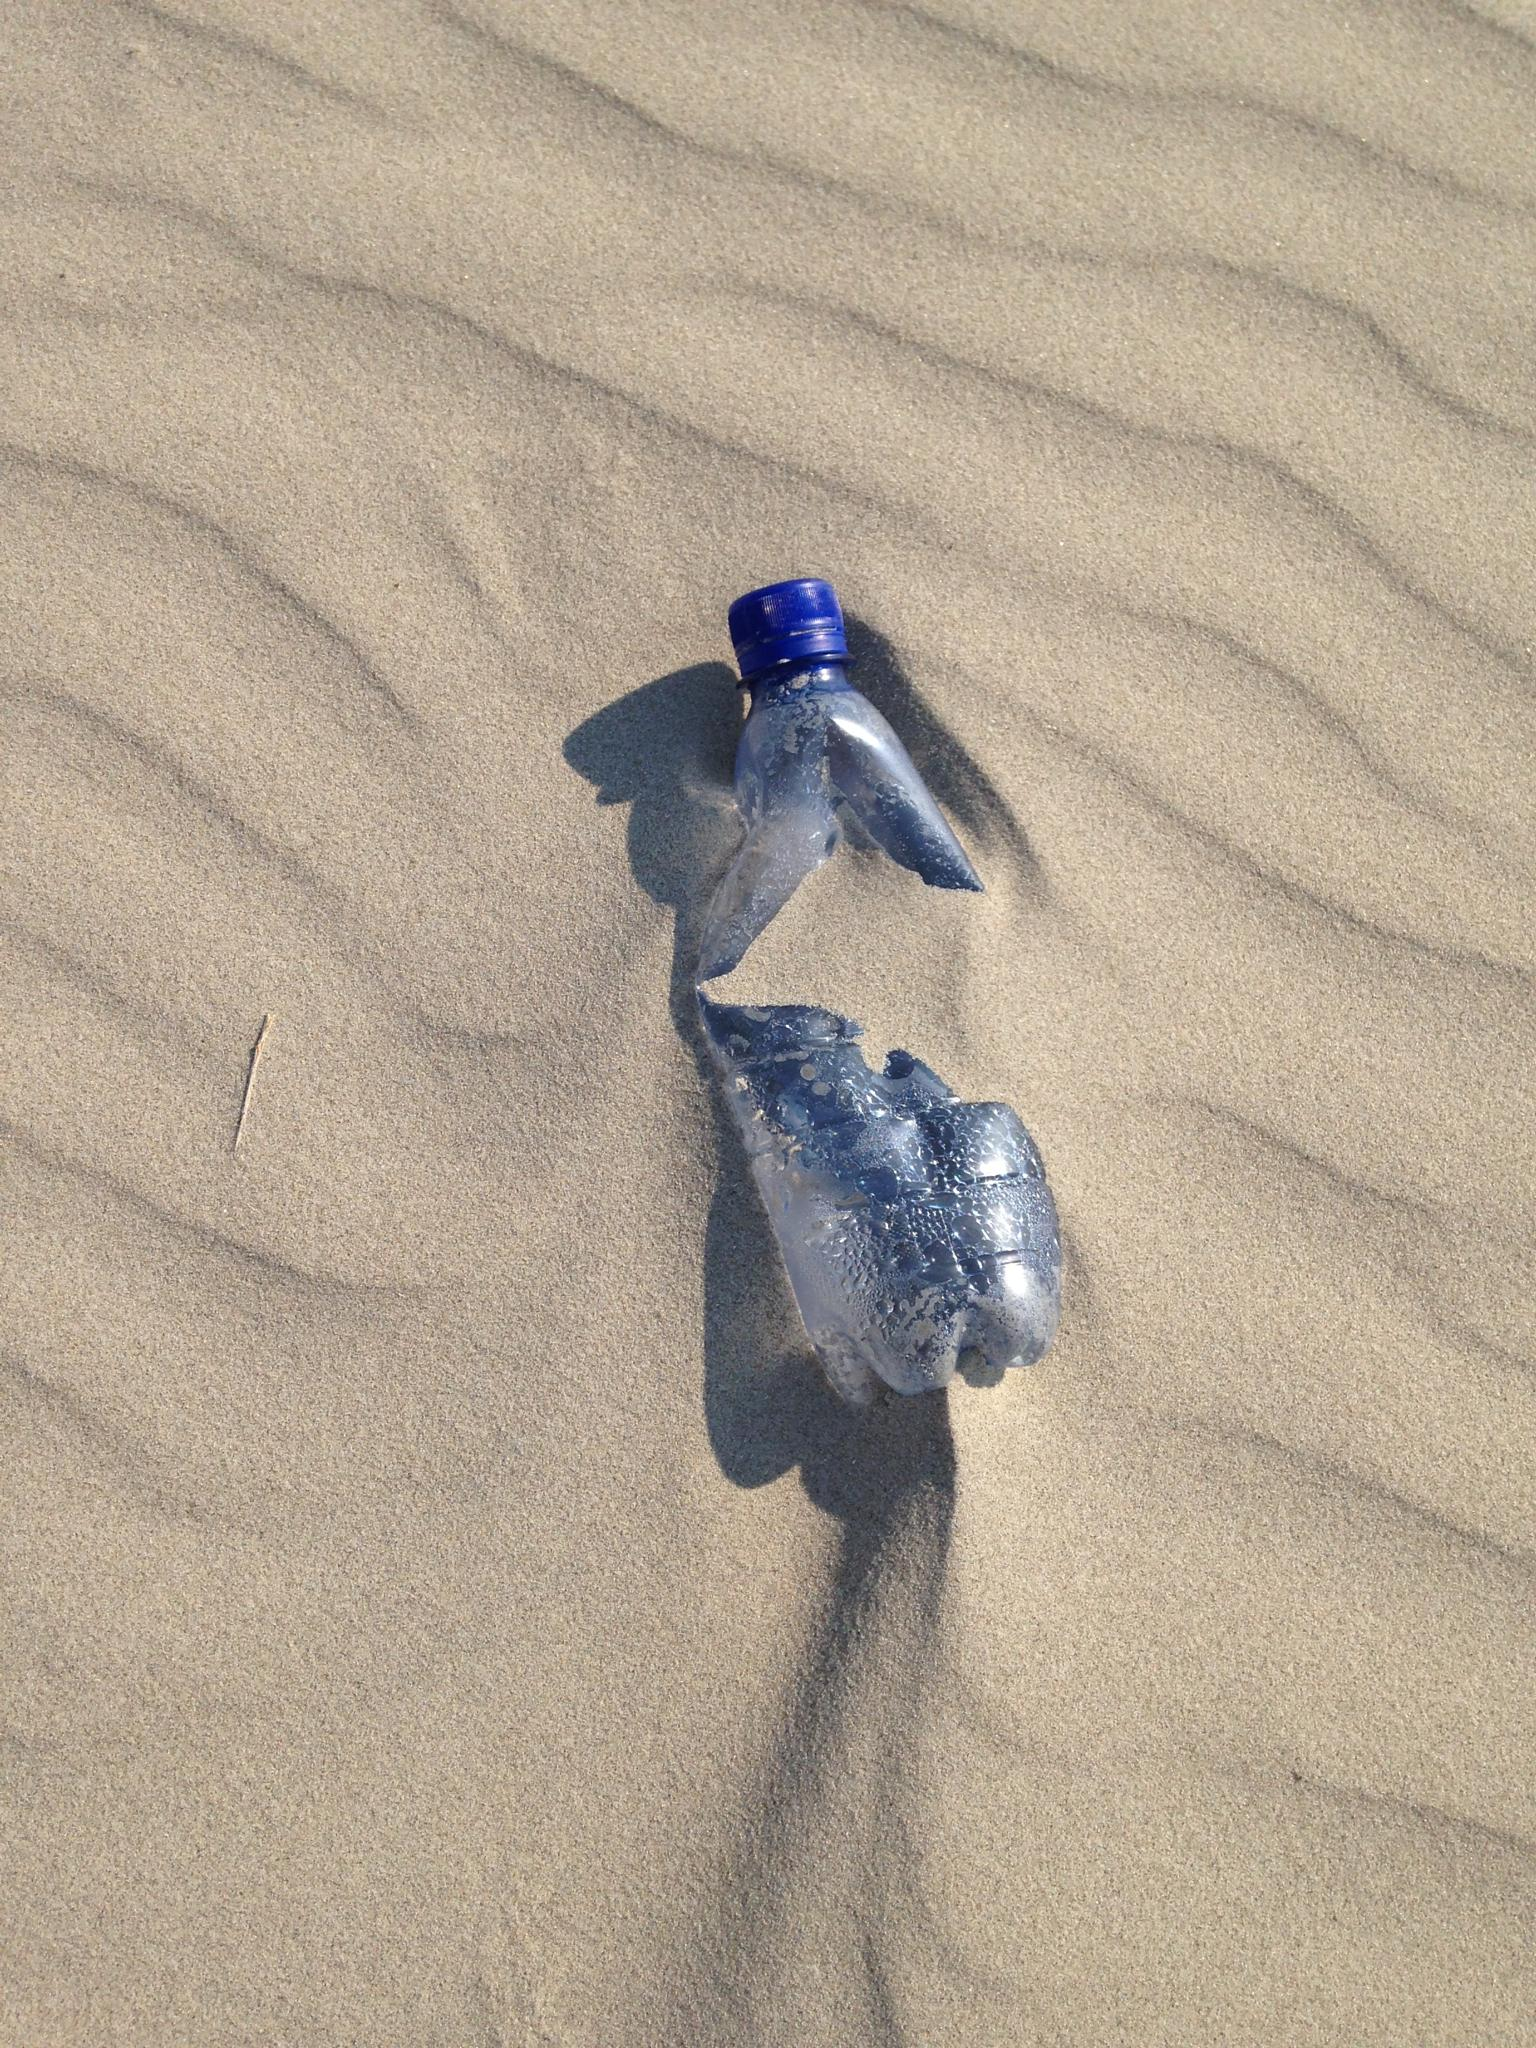 water bottle on the beach by marianne.post.376